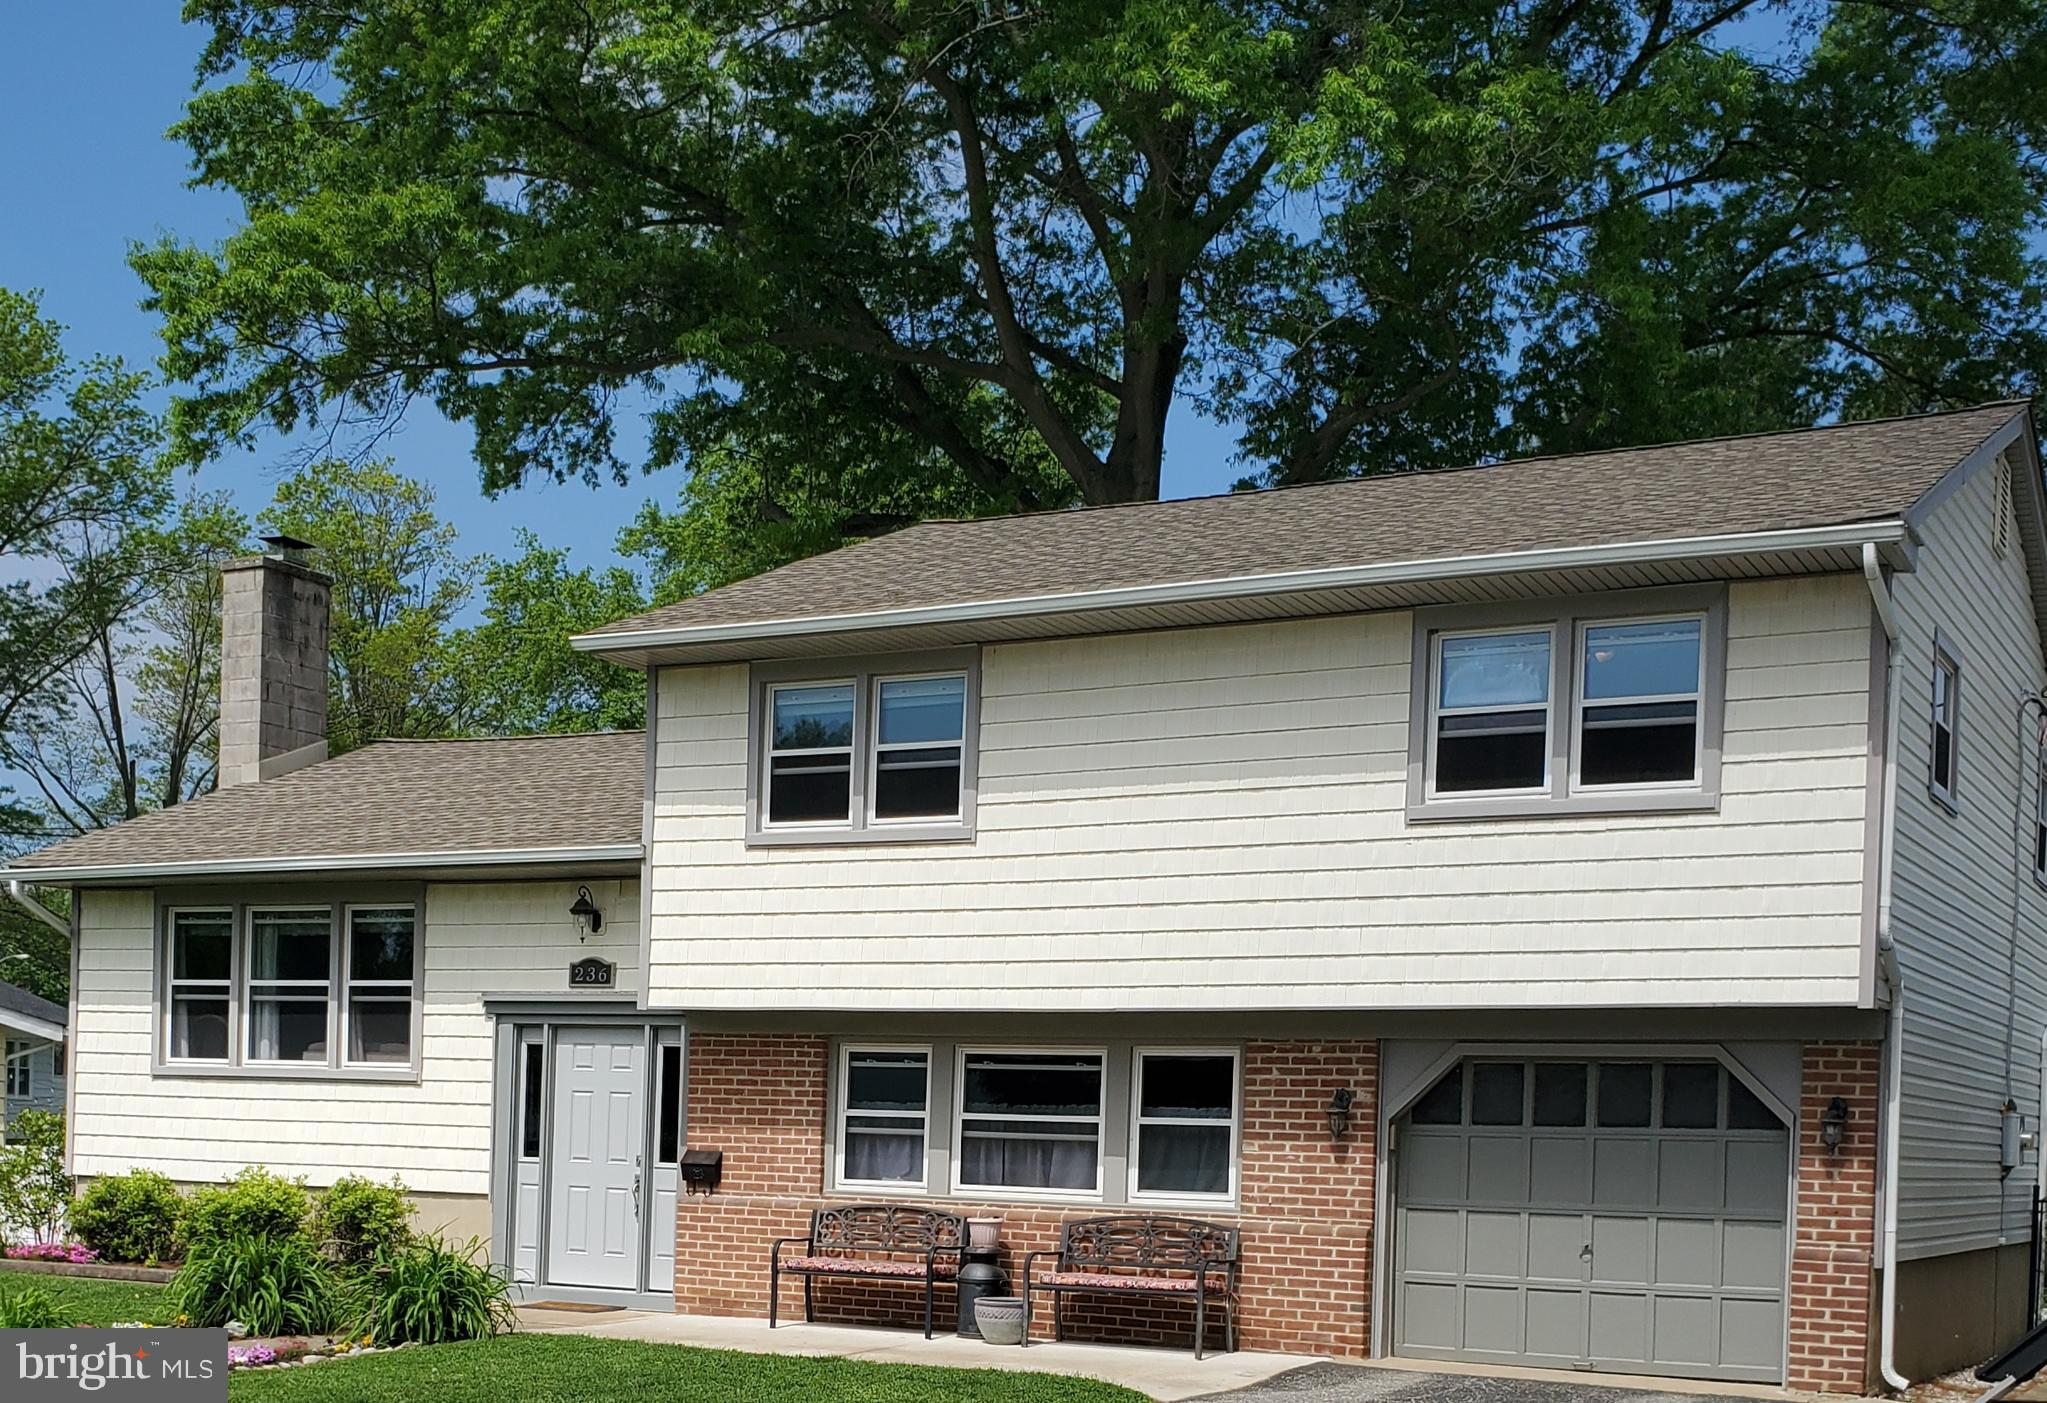 Welcome to your new home! Located in beautiful Woodstown Borough, this attractive split colonial has been loved and well taken care of.  Enter at main level into the family room to drop your bags and jackets which also leads to laundry, half bath, rear yard entrance and garage entrance. Come into the nicely sized living room to relax on those cozy winter evenings in front of the brick wood burning fireplace. This area is open into the formal dining room. The kitchen offers a stainless appliance ensemble along with ample room and counter space for preparing those family gatherings.  Step up to the hallway leading to four generously sized bedrooms, also boasting hardwood flooring.  The backyard is all fenced in, and offering a nice cemented area for recreation.  Roof &  hot water heater - 2014.  Electrical Panel - 2015. Rear yard fencing 2016. Refrigerator, washer/dryer - 2018 - You will be pleasantly surprised by this lovely and inviting home, make your appointment today!